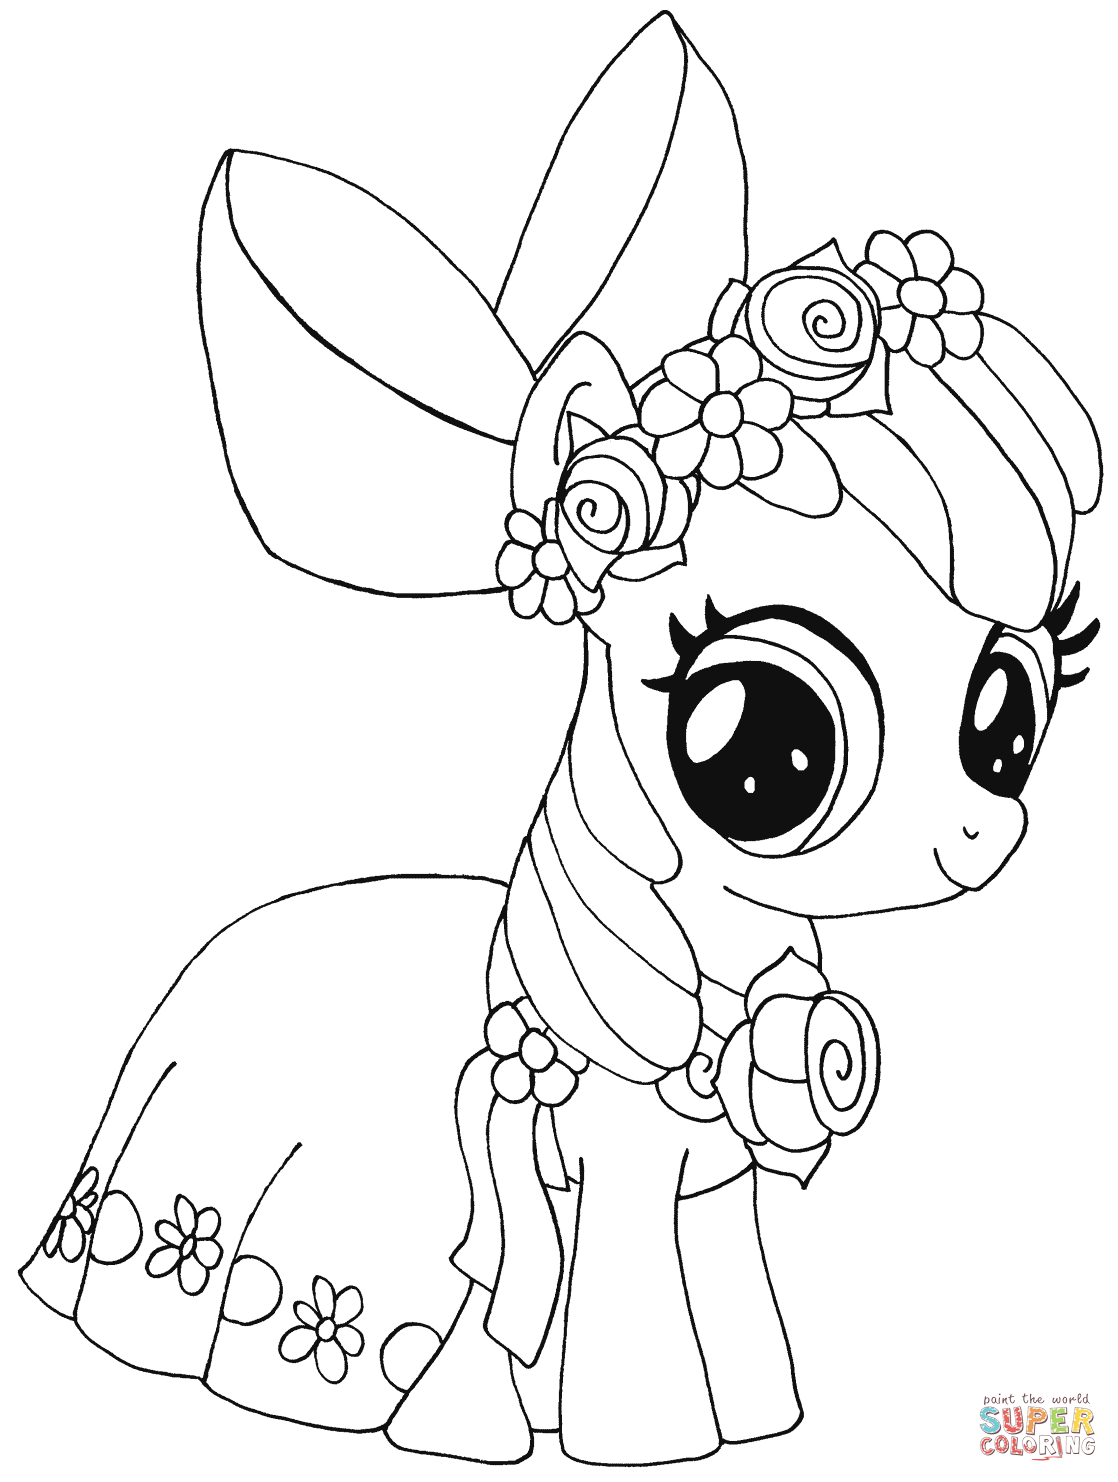 Apple-bloom coloring page